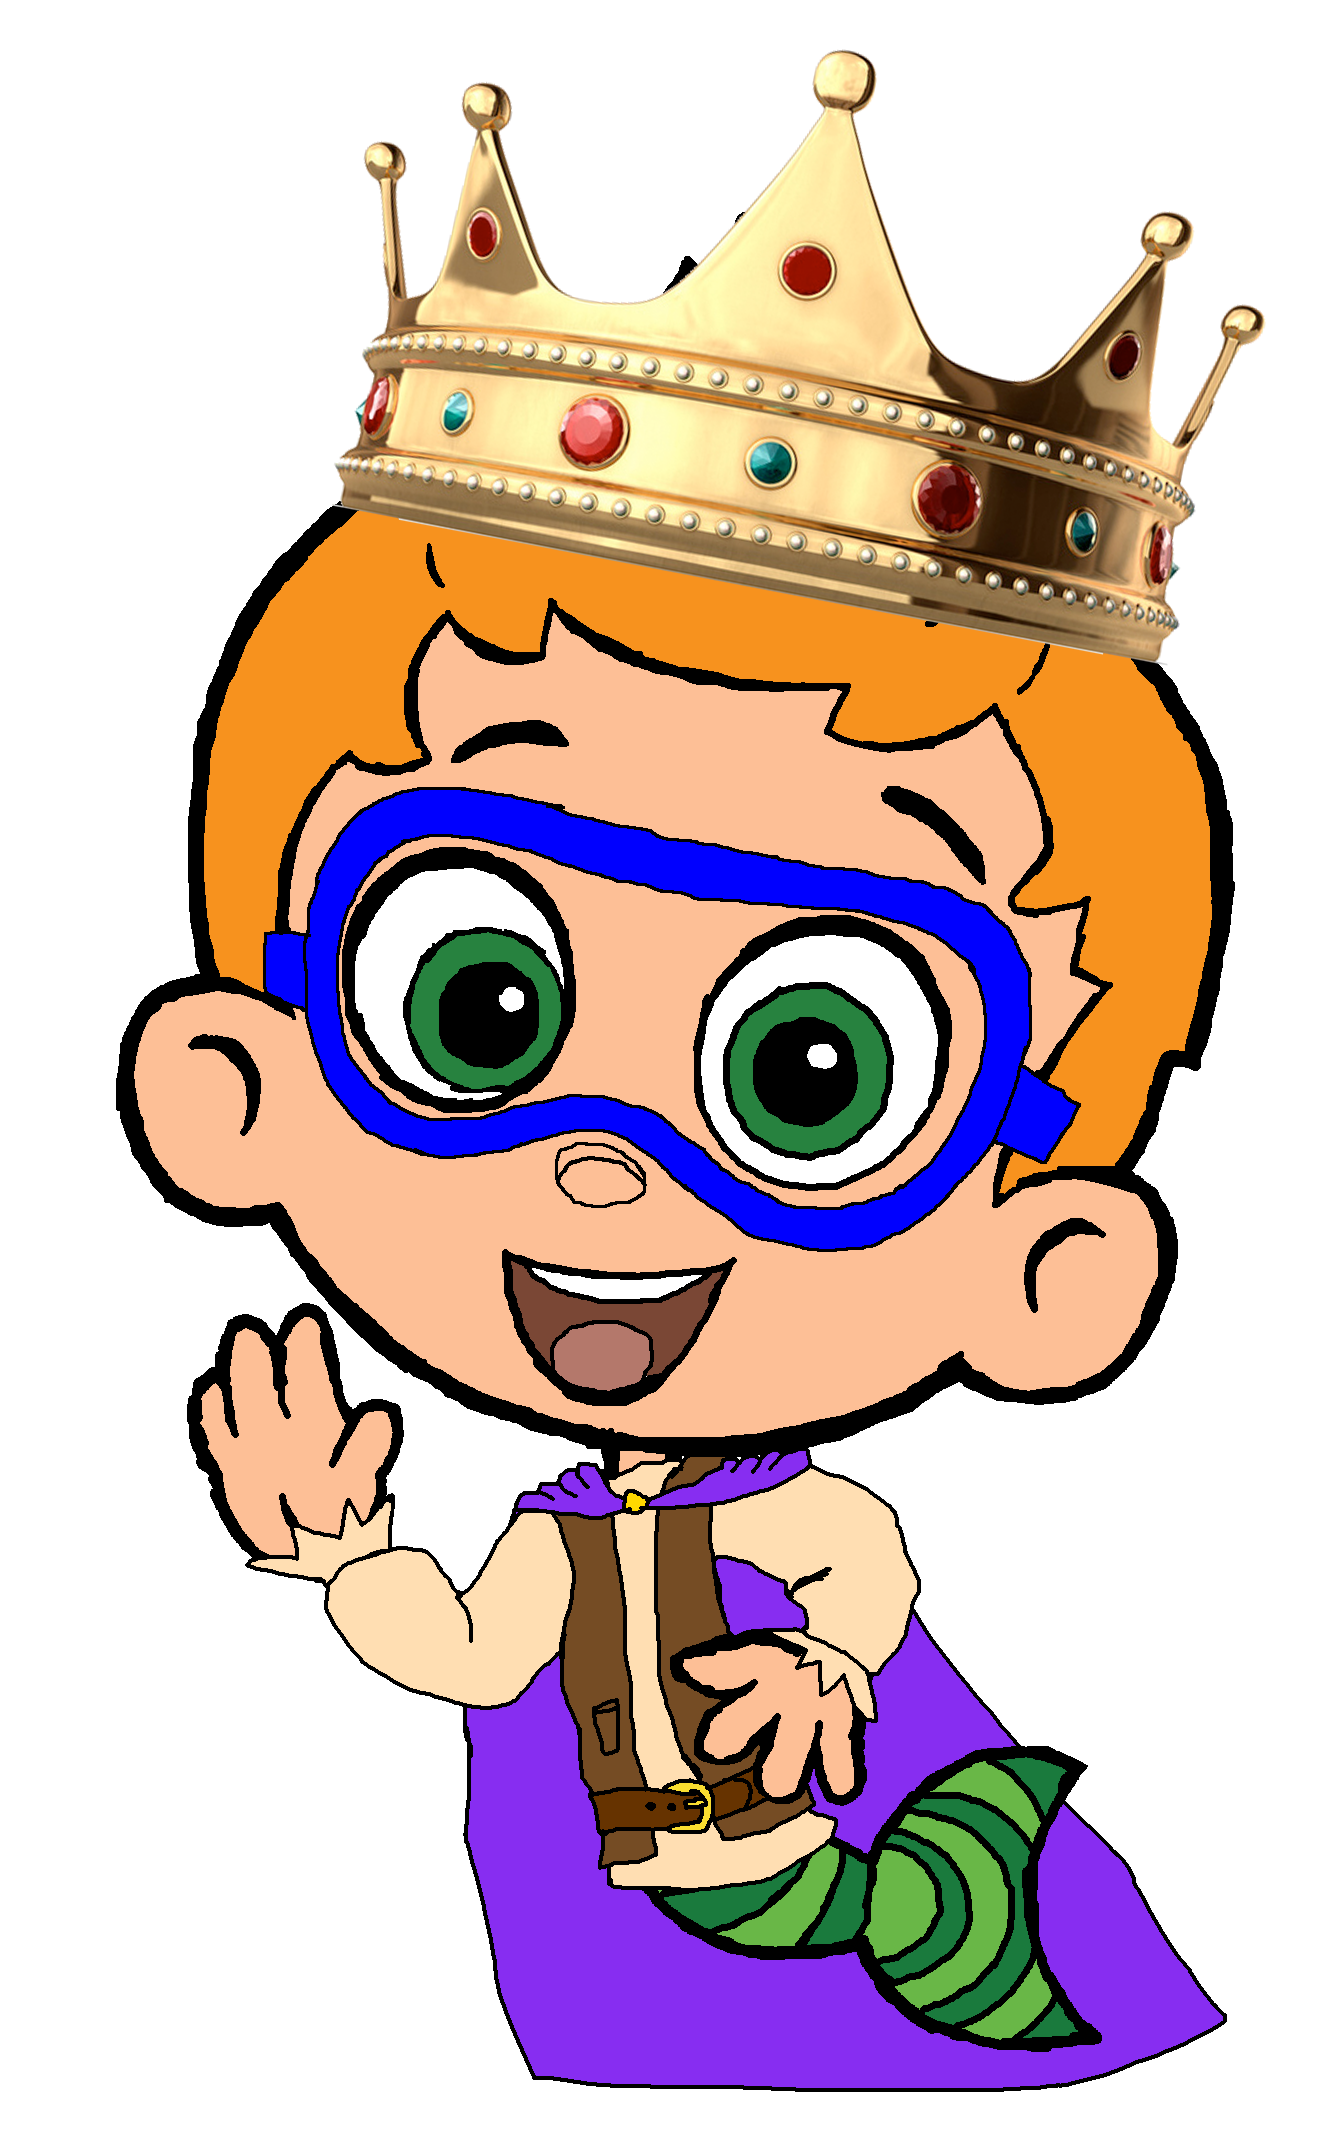 Prince-Nonny-bubble-guppies-32533776-1333-2149.png (PNG Image, 1333 ...